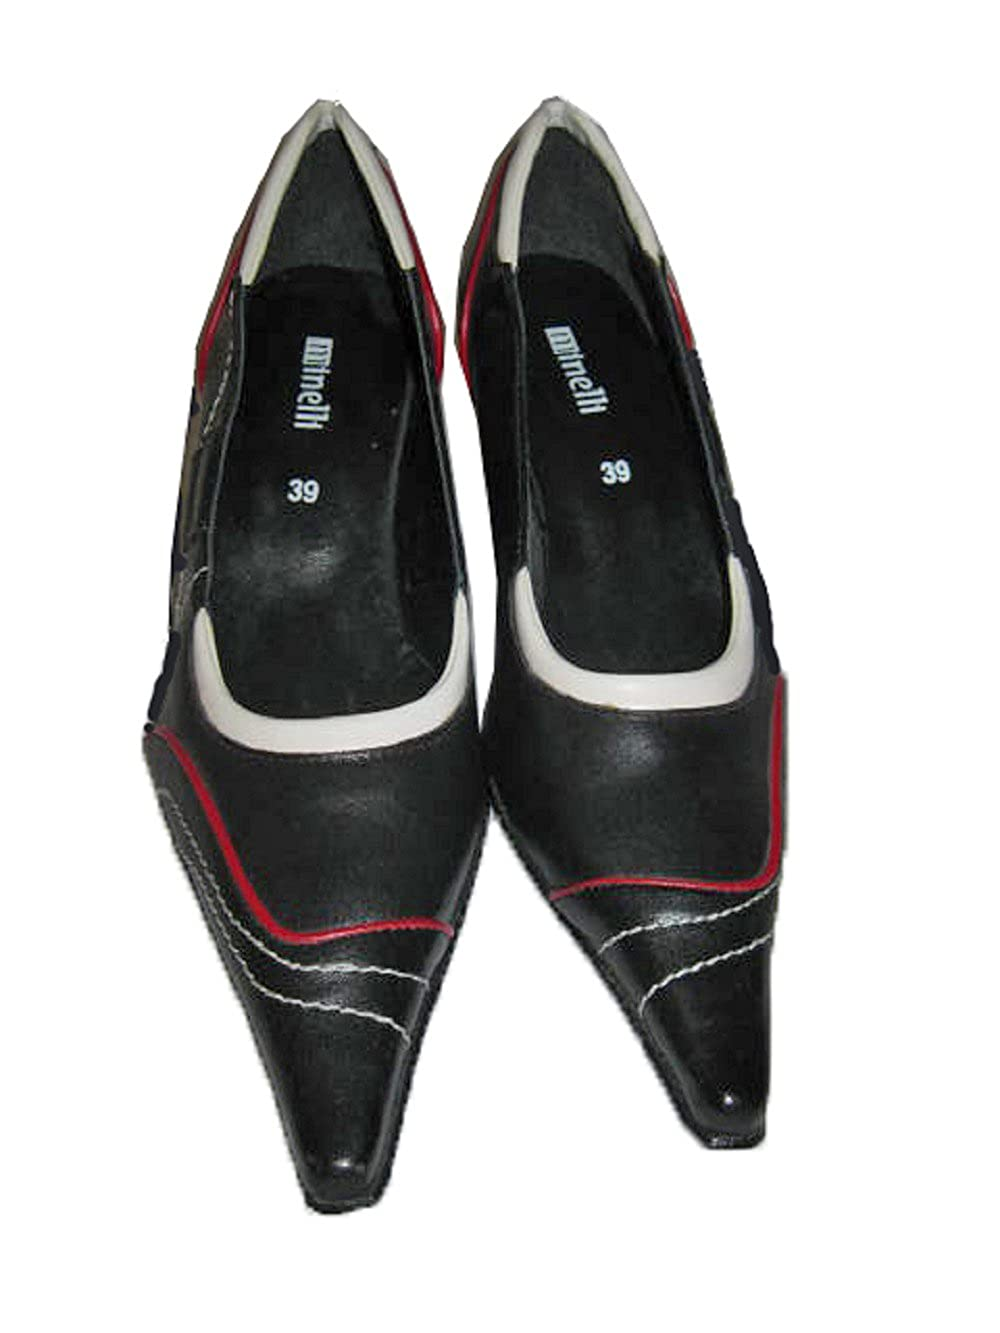 Made in ITALY Genuine LEATHER Low-Heel Pump Size 39 MINELLI of ITALY Black